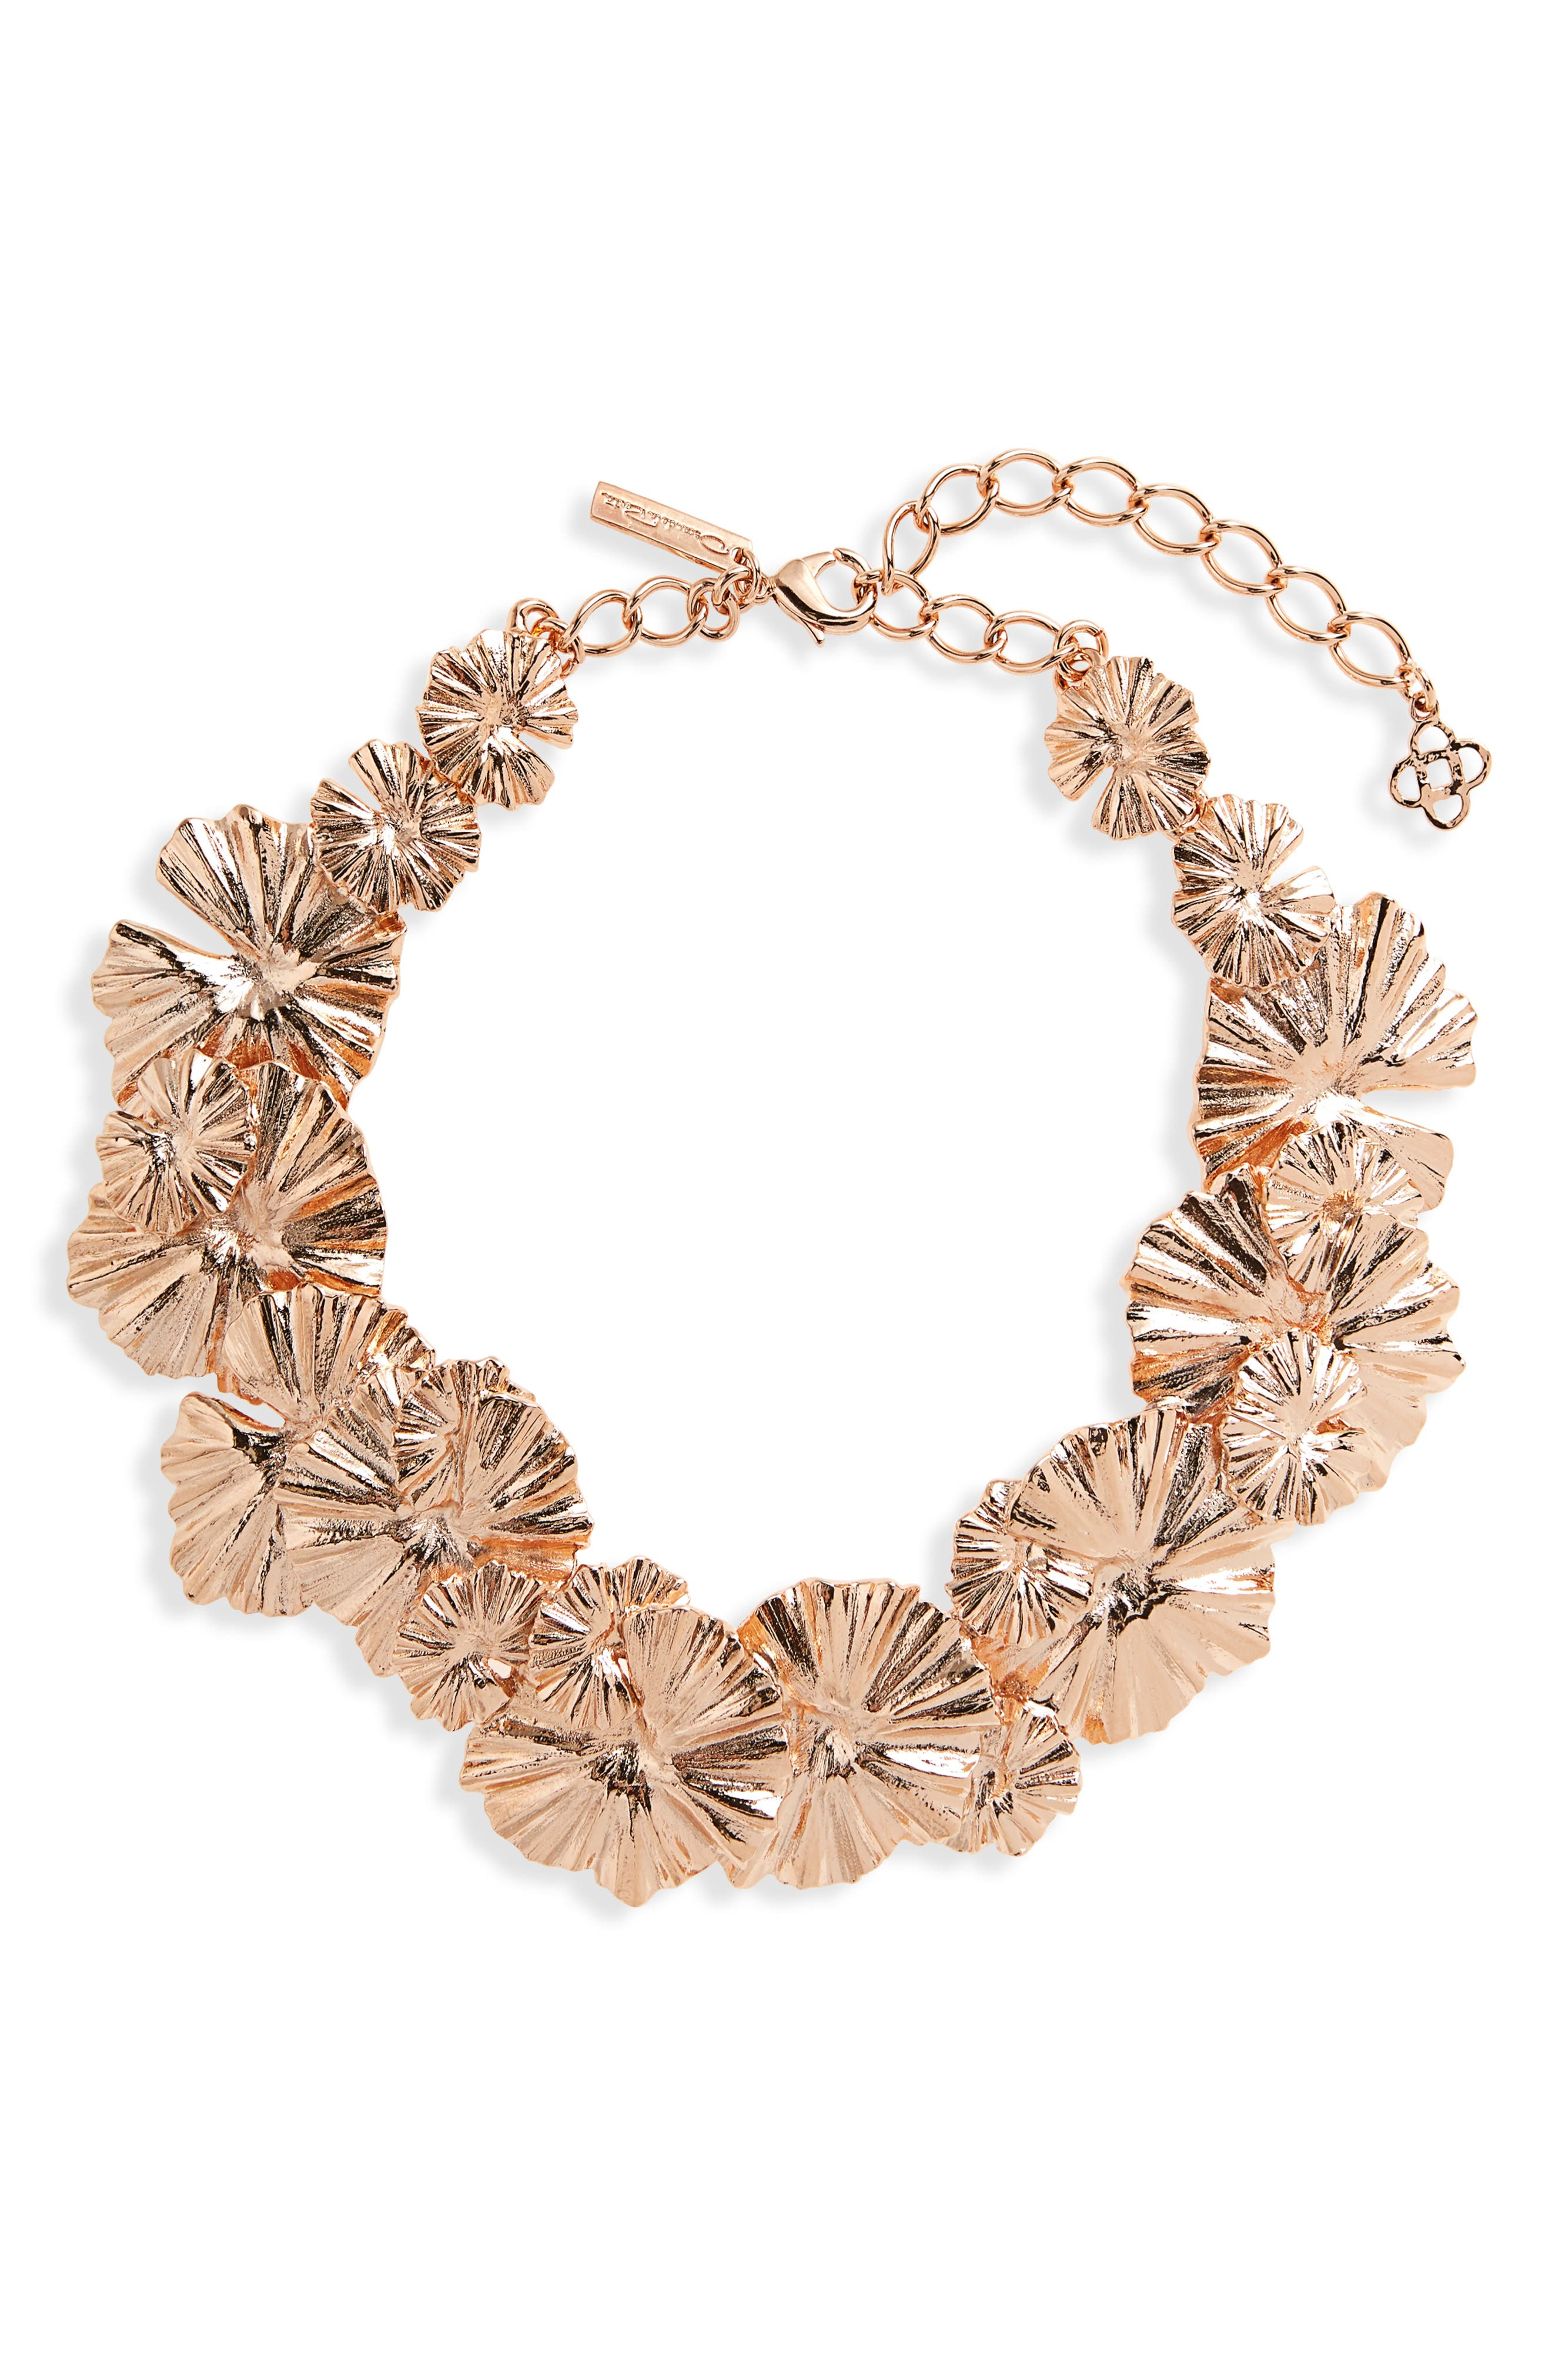 Wildflower Necklace,                         Main,                         color, Rose Gold